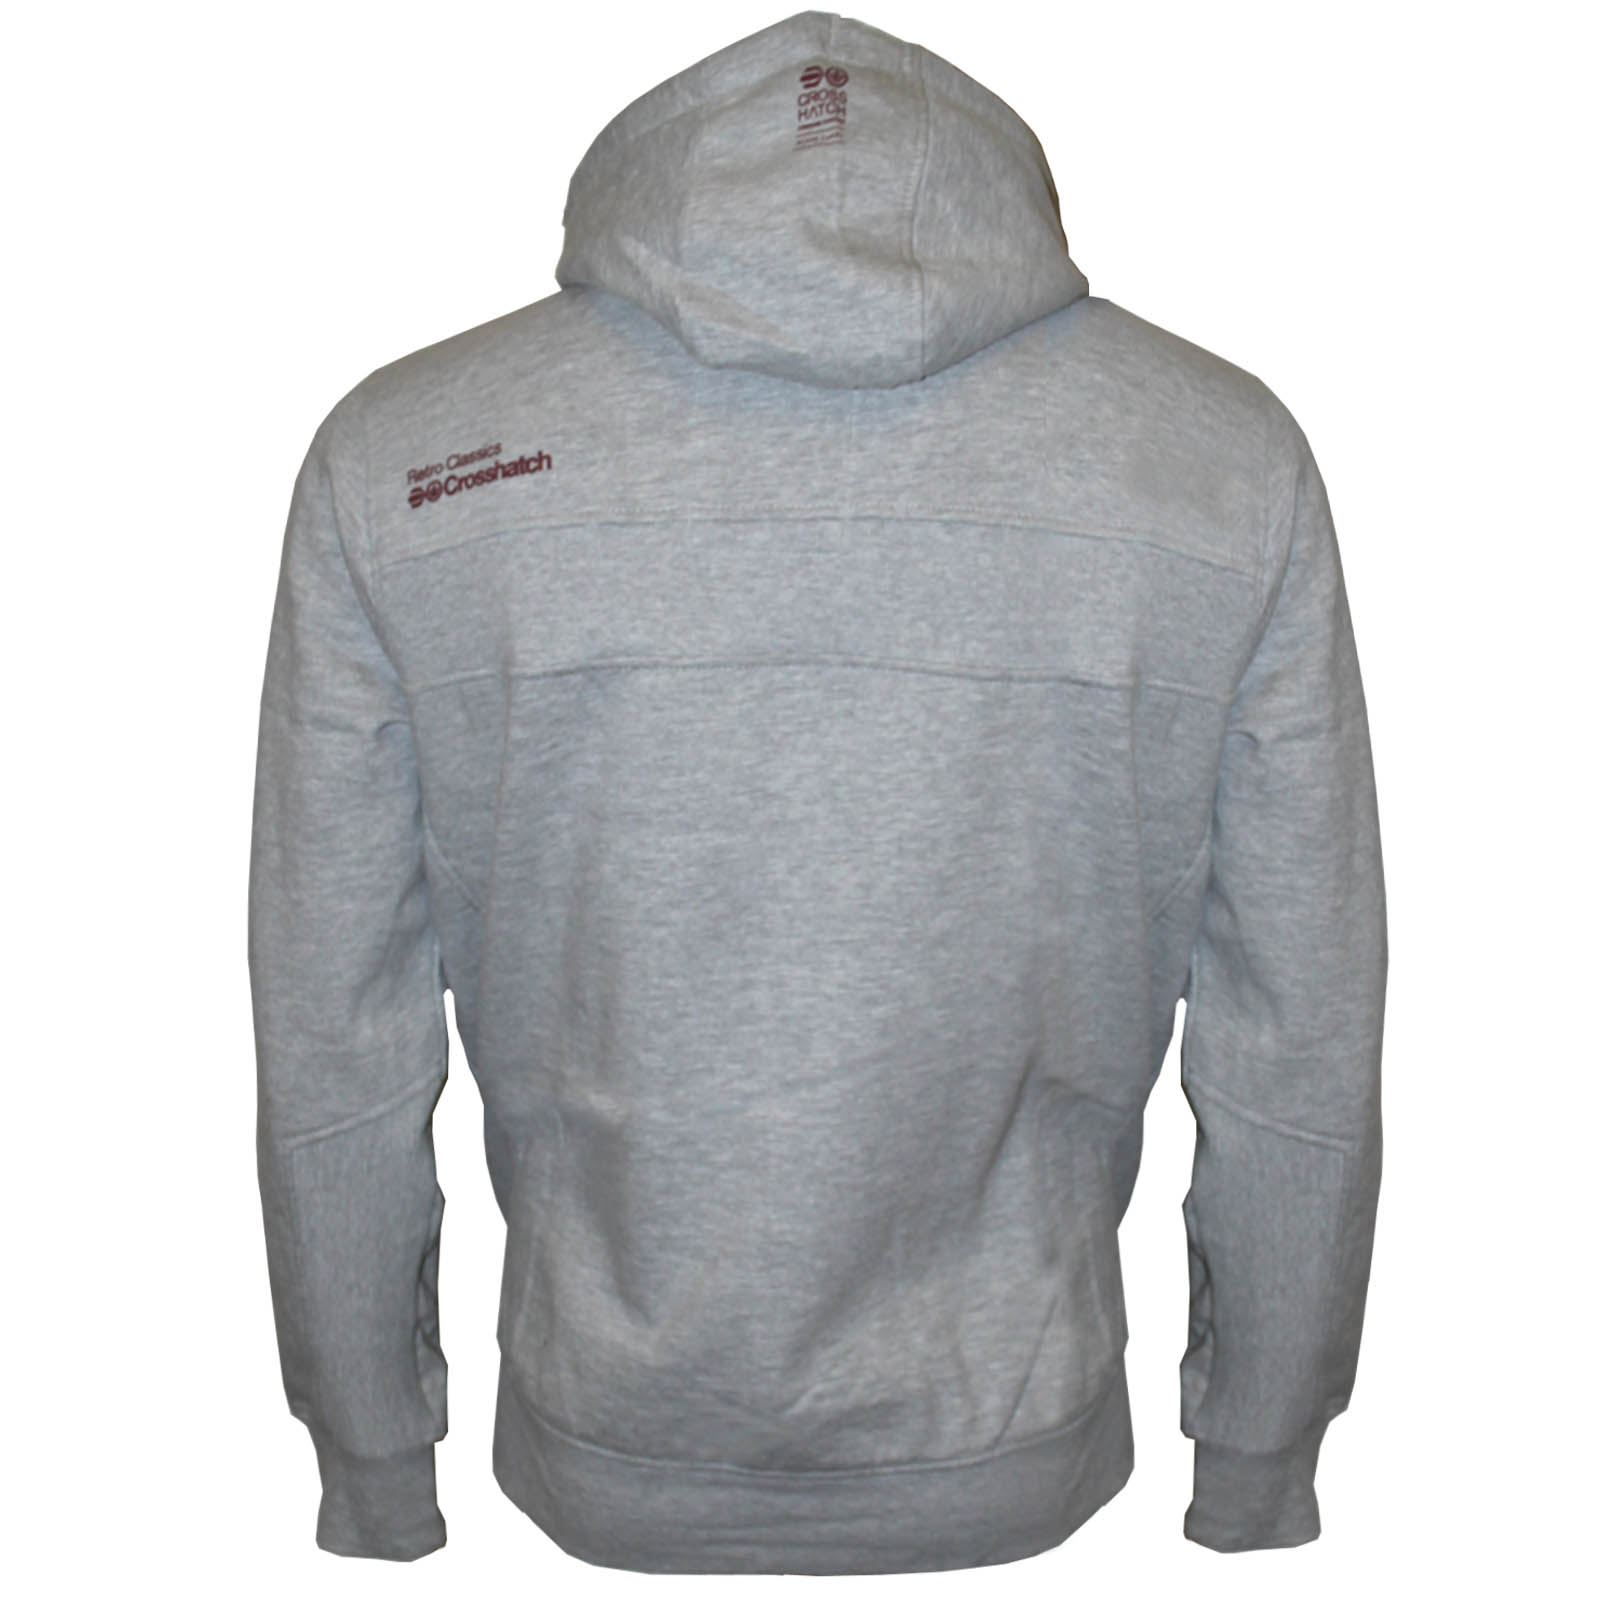 MENS-PULLOVER-FLEECE-CROSSHATCH-HOODIE-HOODED-SWEATSHIRT-JUMPER-TOP-2018-WINTER